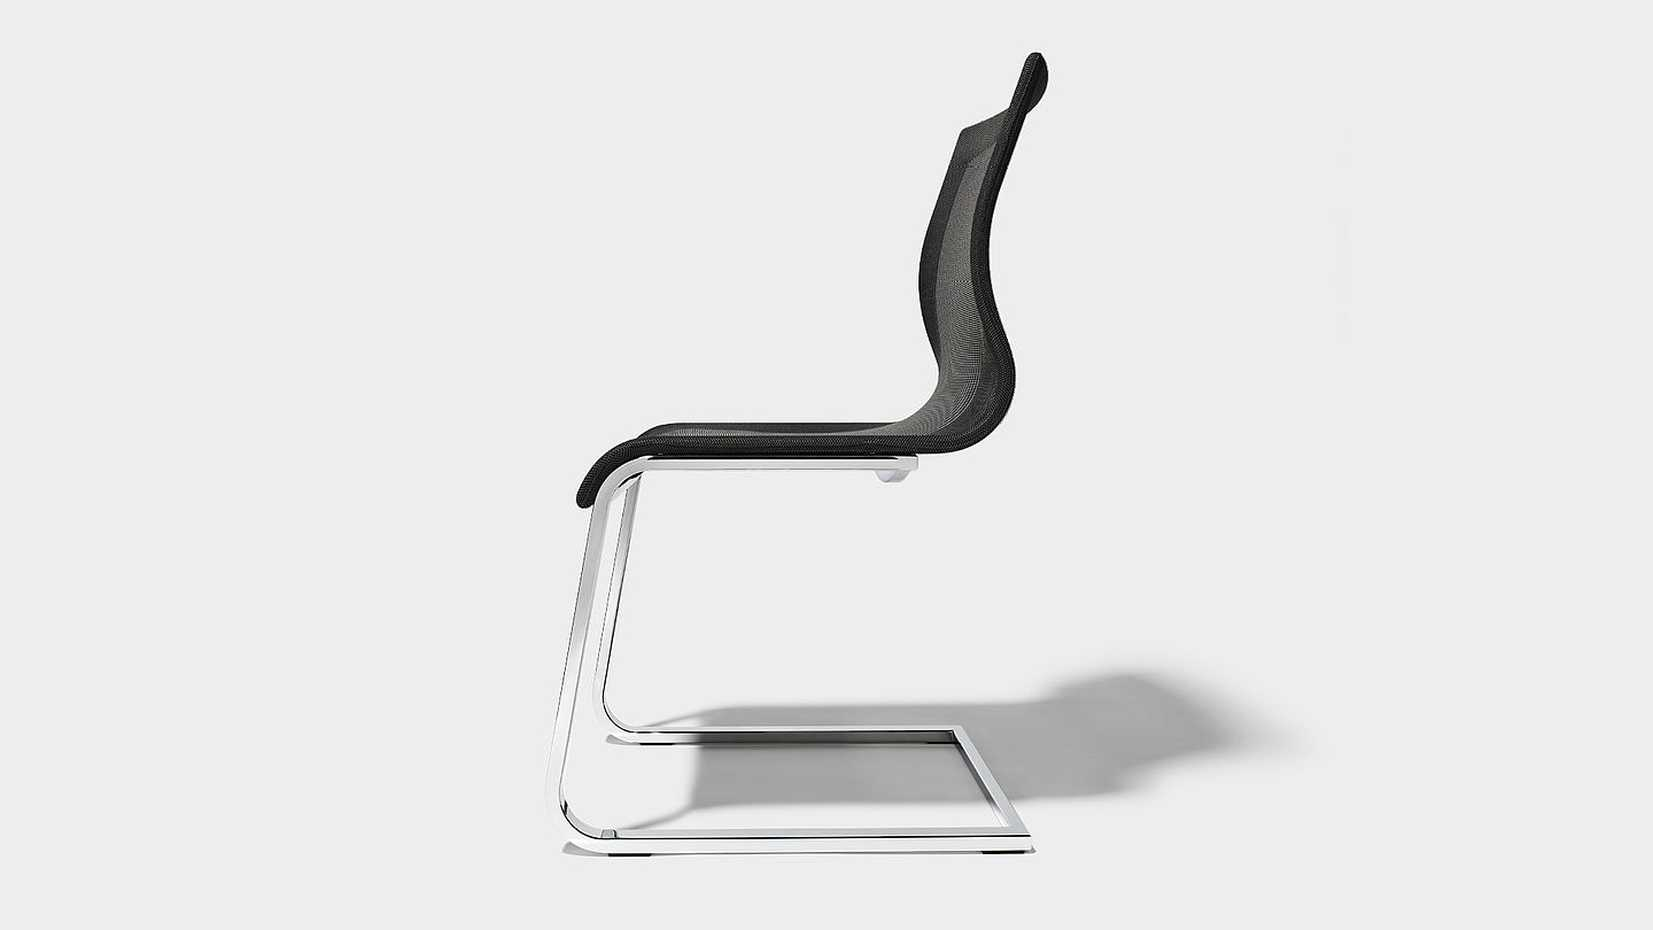 Magnum Stricktex Cantilever Chair by Team 7 product image 3